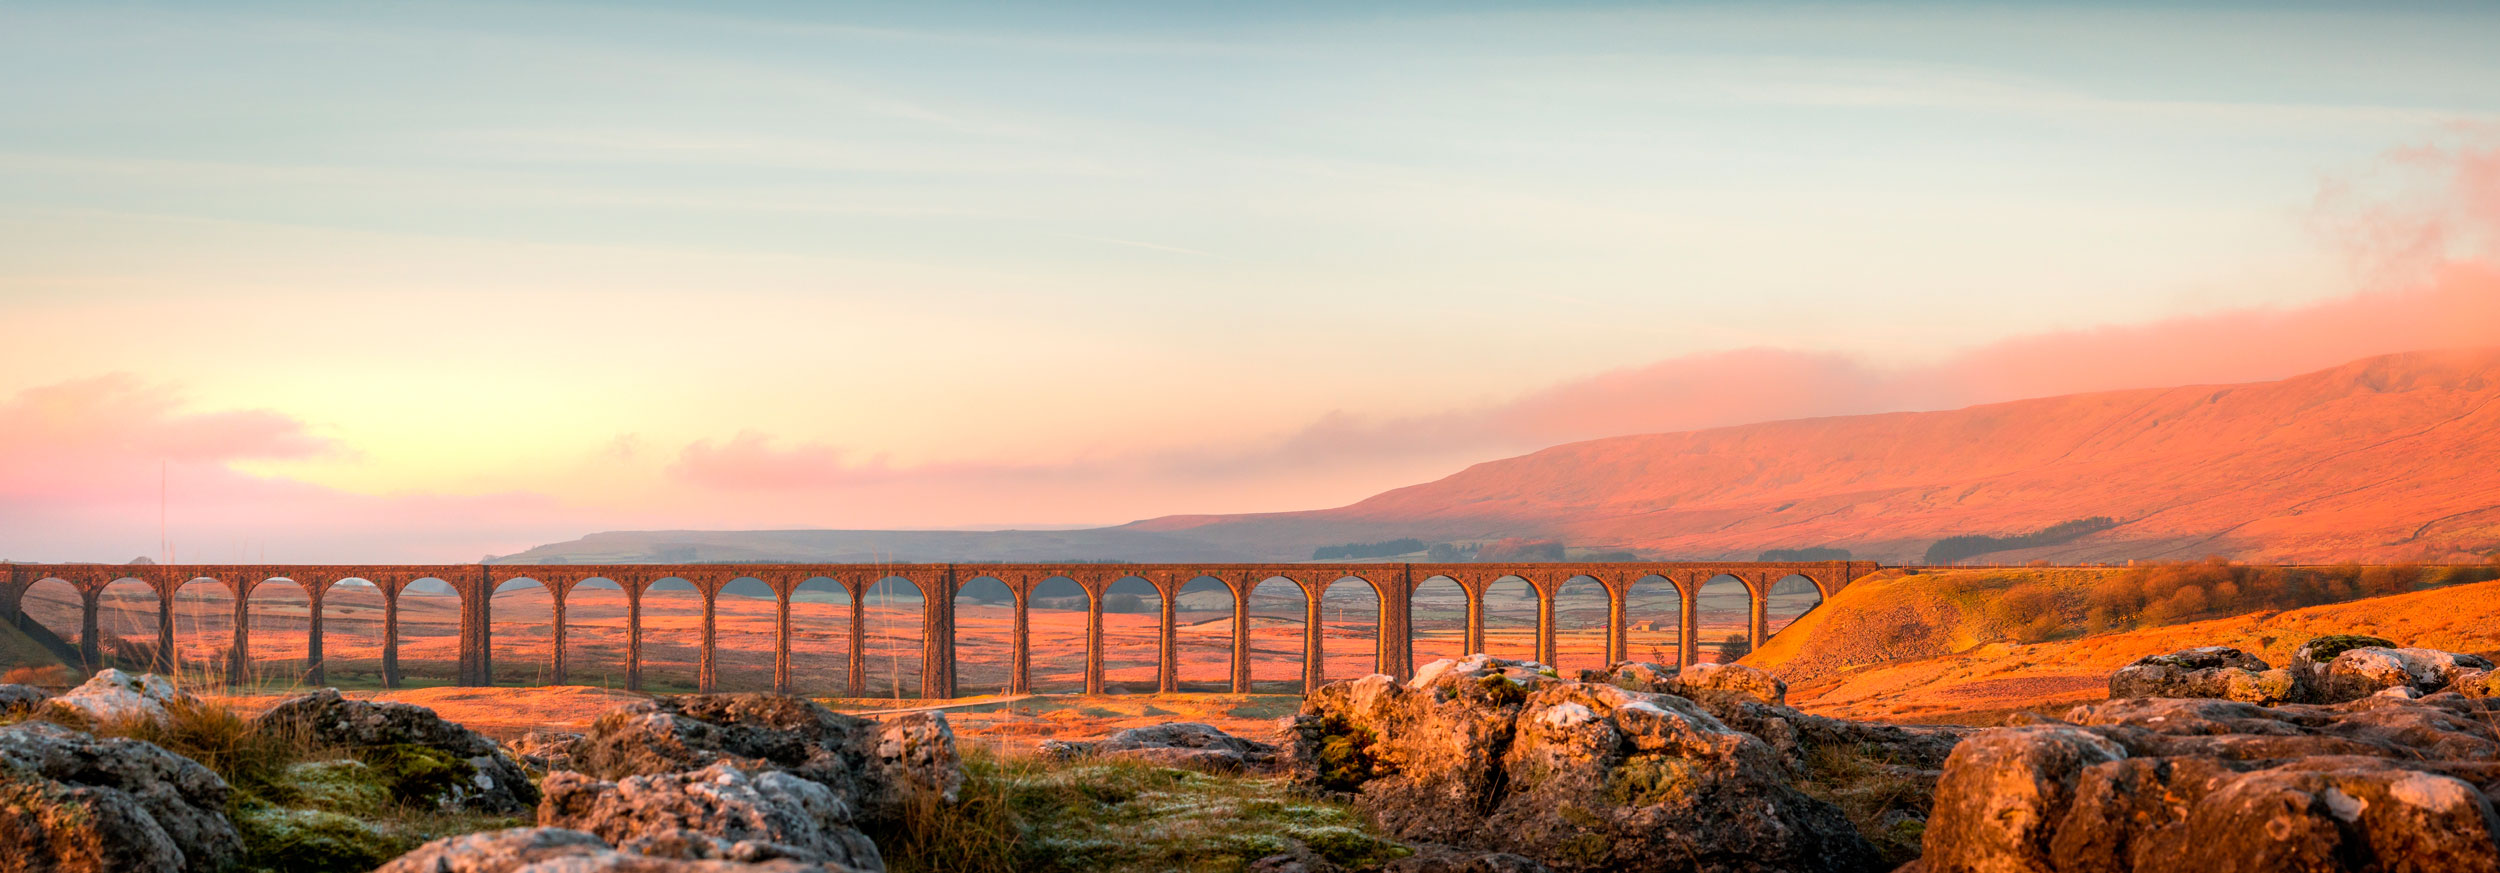 The remarkable Ribblehead Viaduct, Yorkshire Dales  (ford34/Shutterstock)